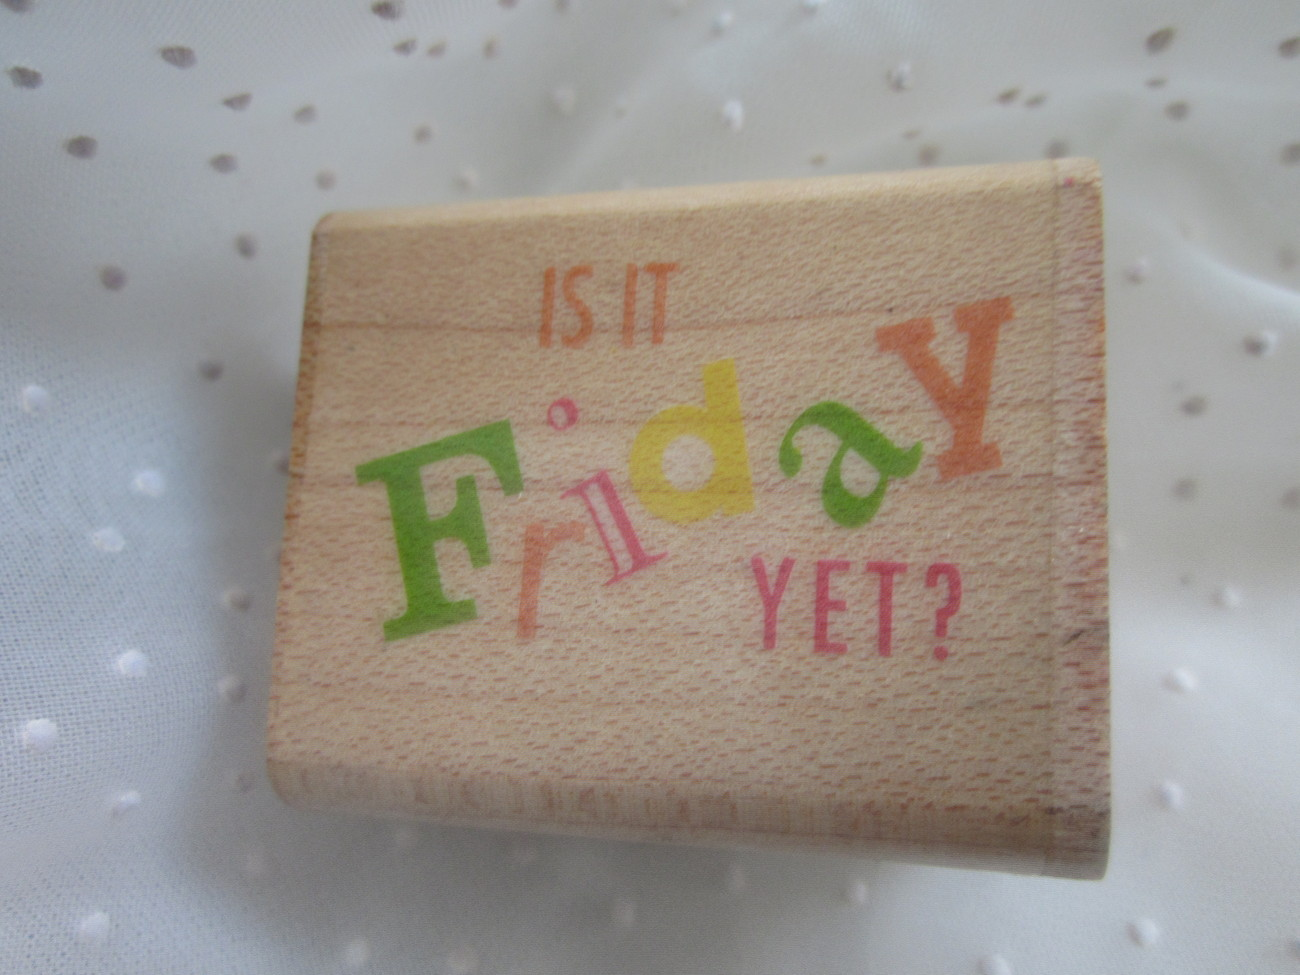 Is It Friday Yet Rubber Stamper Stamp 1992 Noteworthy Brand